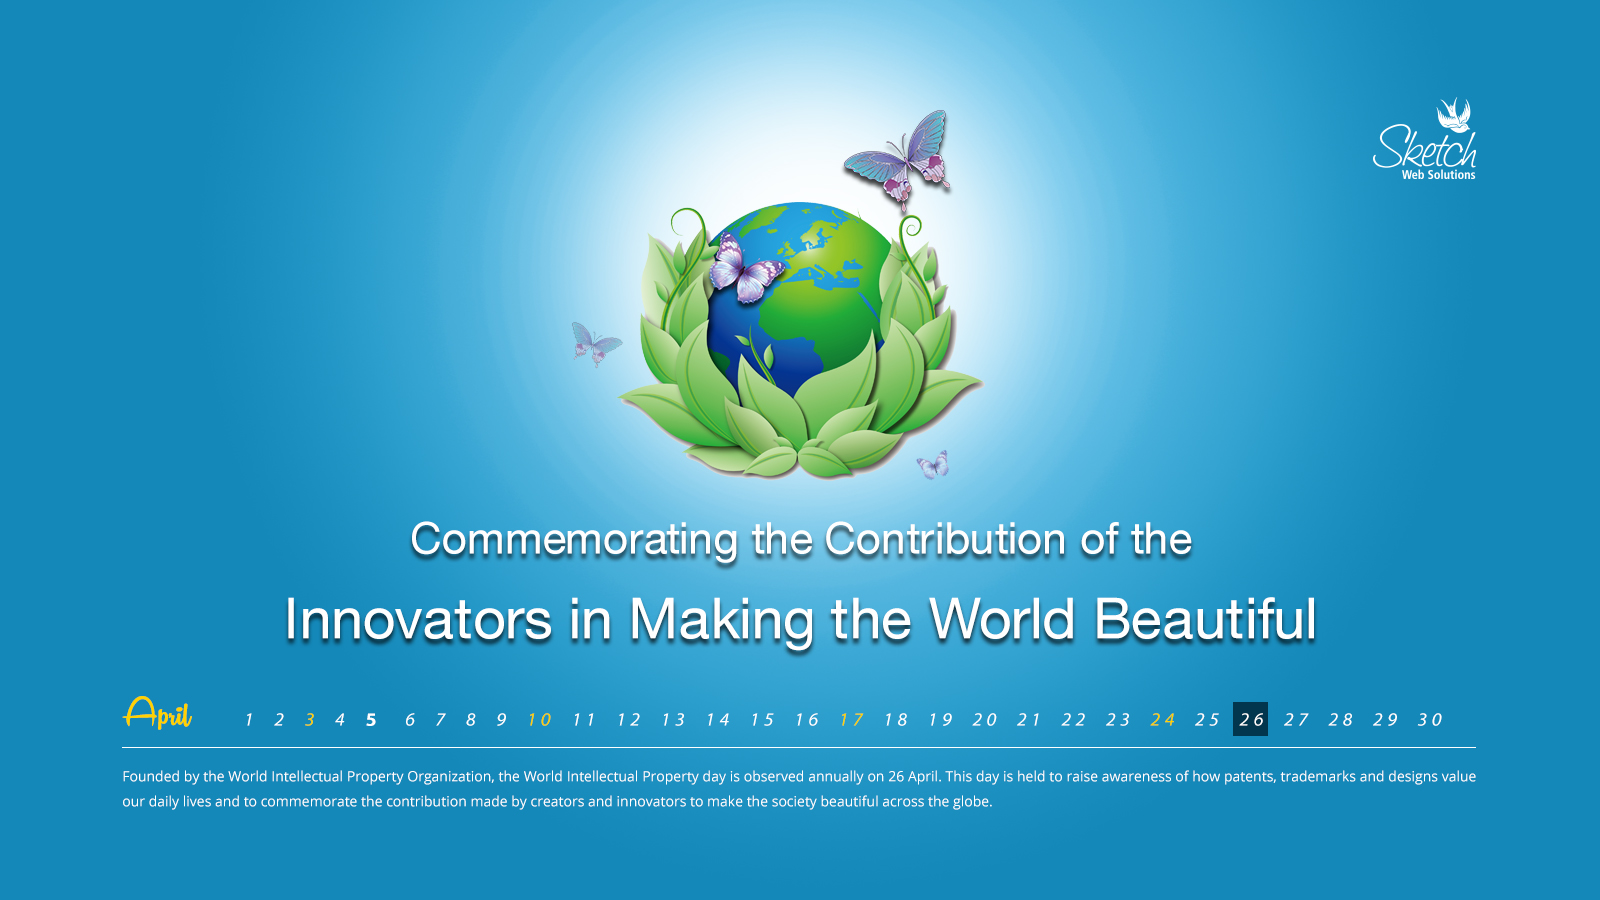 Commemorating the Contribution of the Innovators in Making the World Beautiful